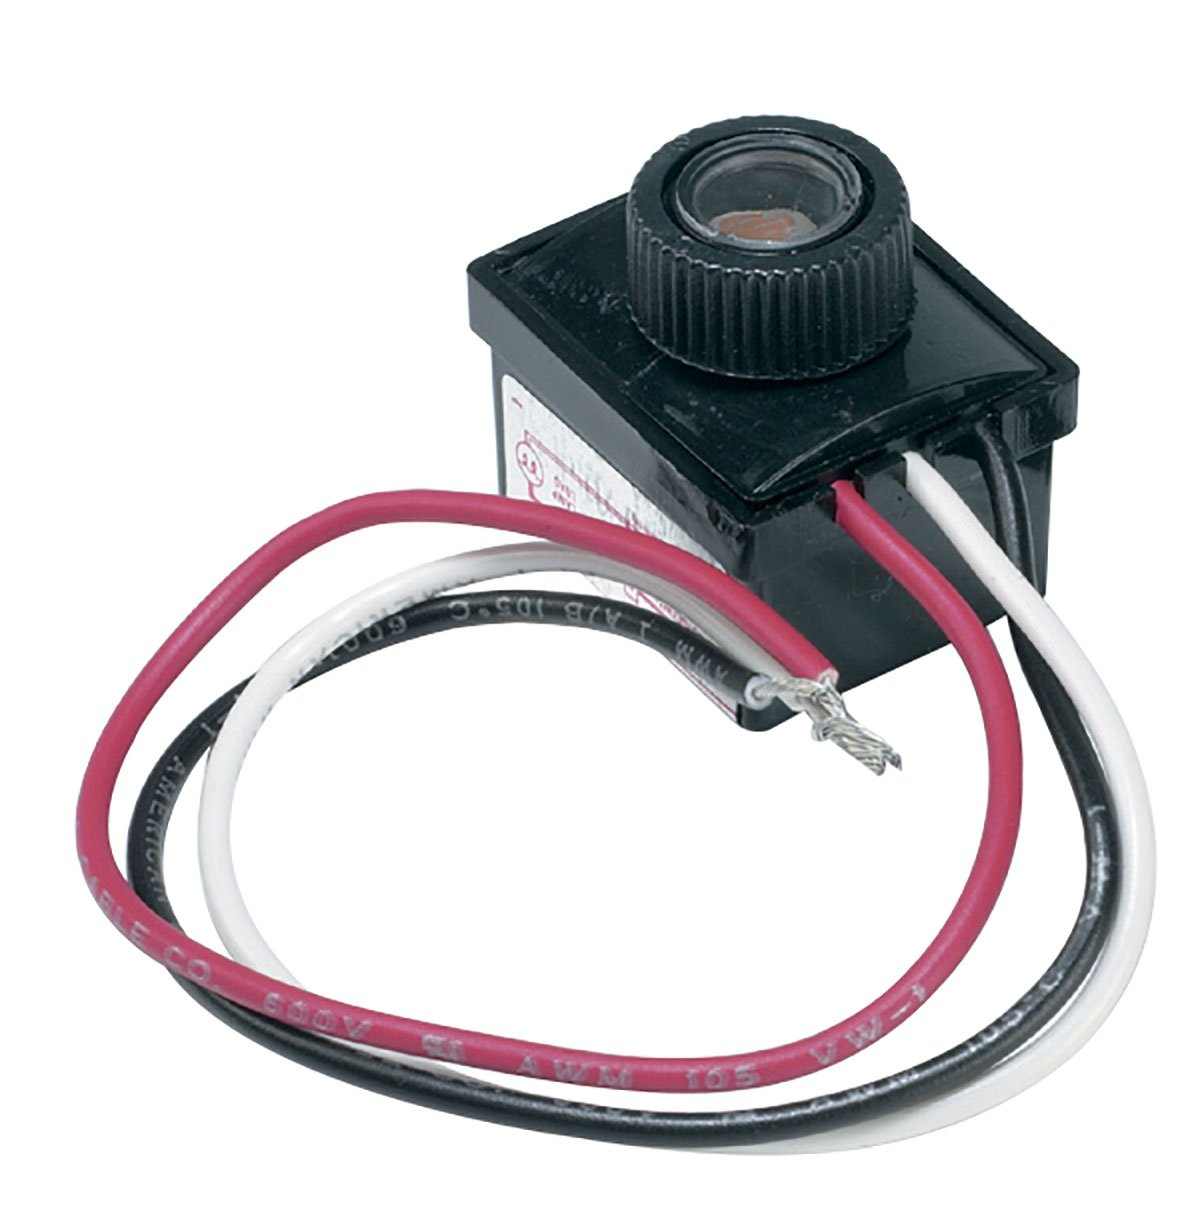 Solo Lights, Photocell Light Sensor Switch for Hardwire Outdoor Lamp Posts for Dusk to Dawn Control